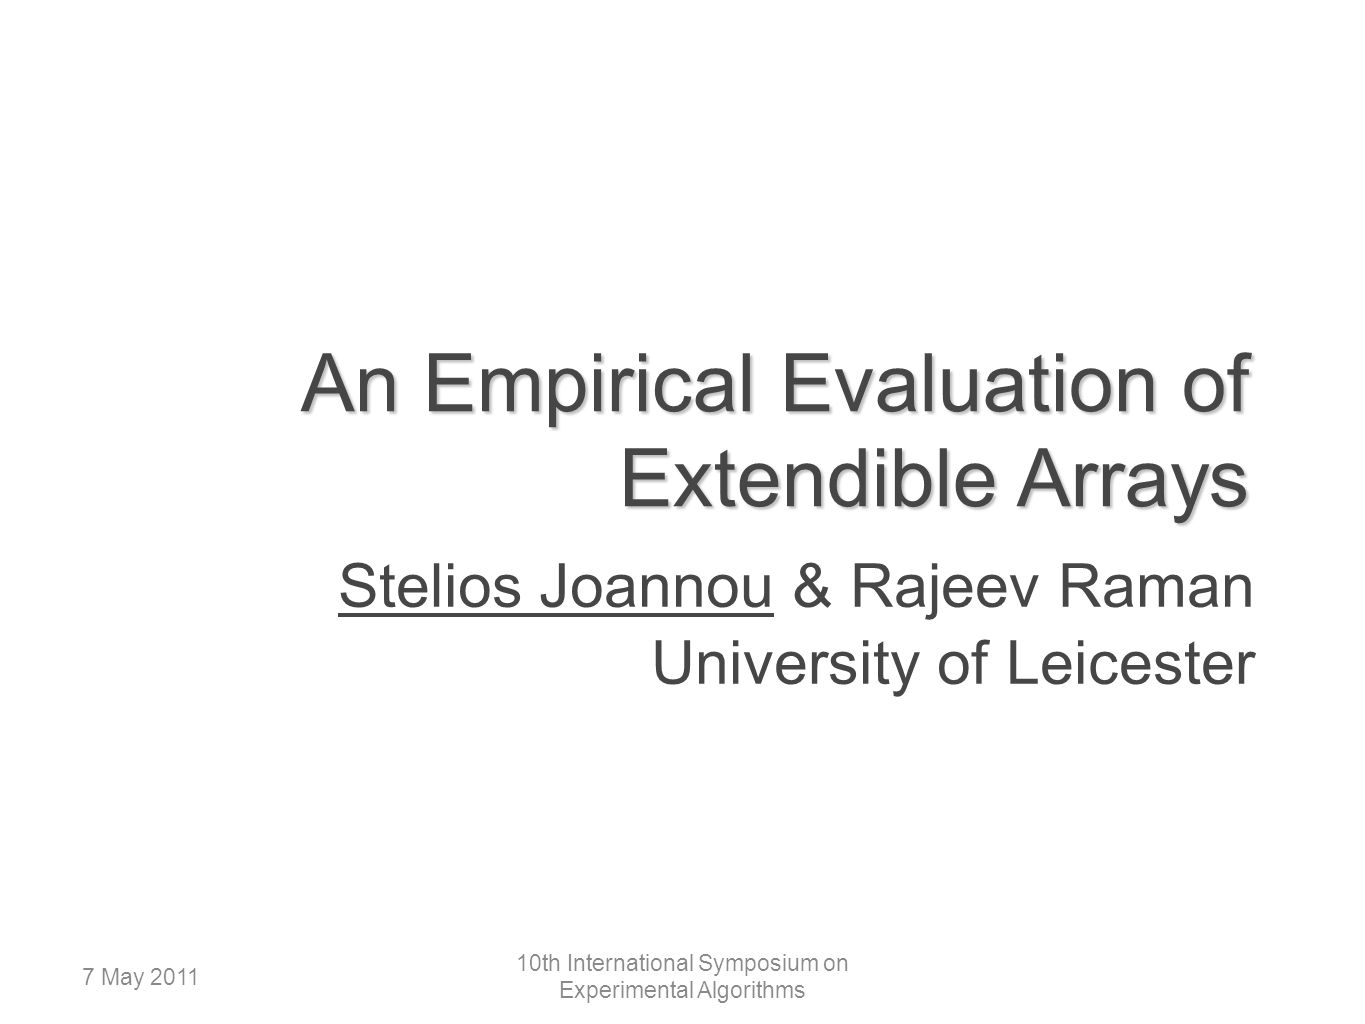 An Empirical Evaluation of Extendible Arrays Stelios Joannou & Rajeev Raman University of Leicester 7 May 2011 10th International Symposium on Experimental Algorithms